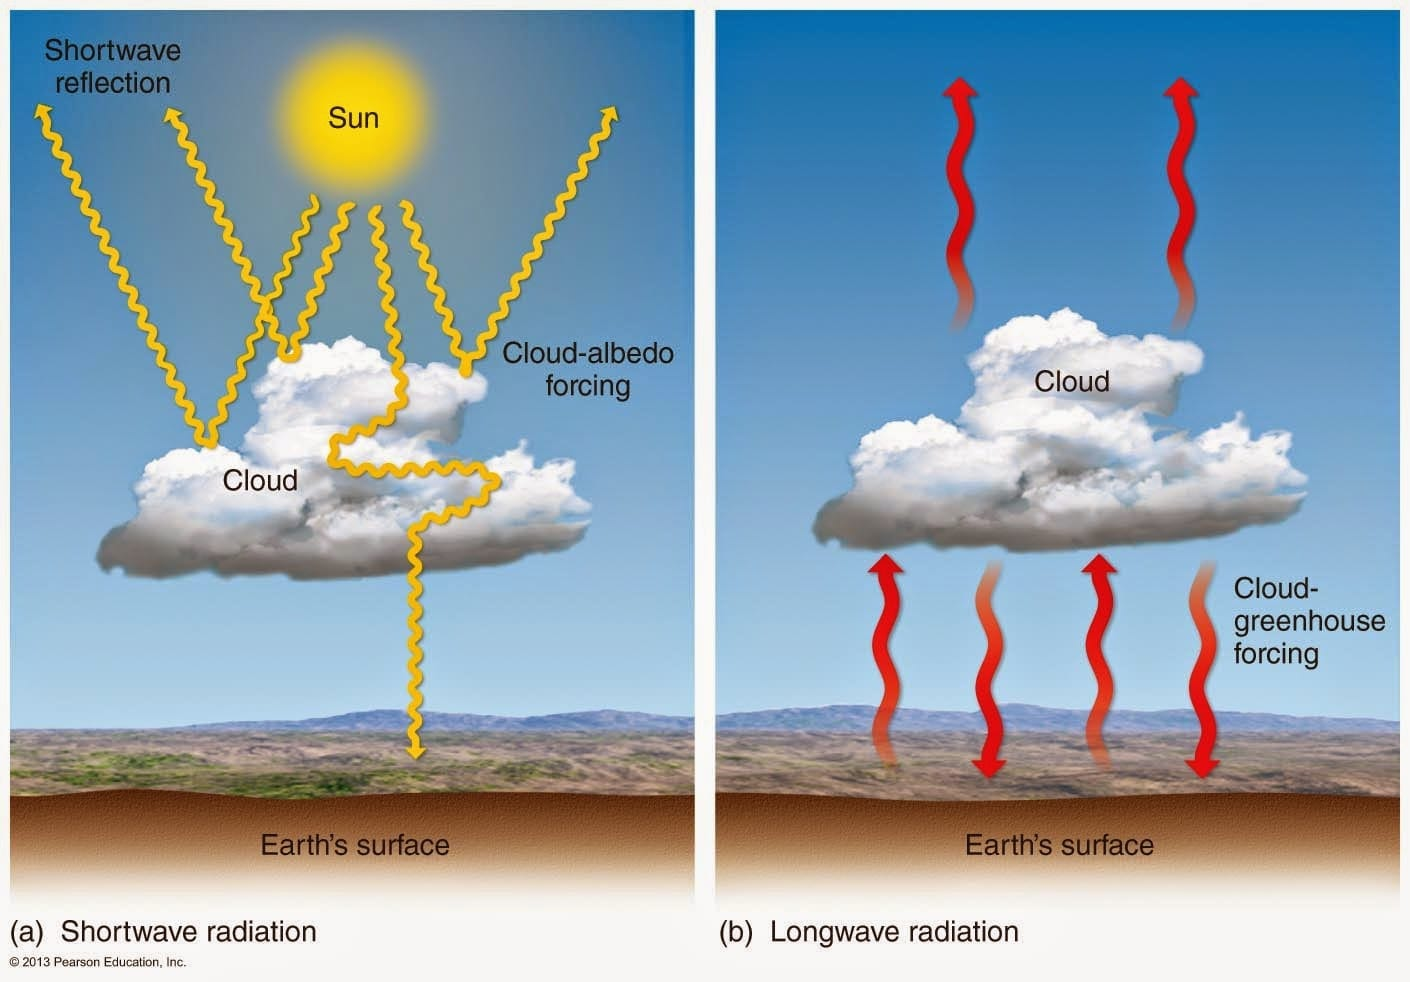 Cost Of Cloud Brightening For Cooler Planet Revealed Innovation Electricalcircuits1 Via Eminariboblogspotcom